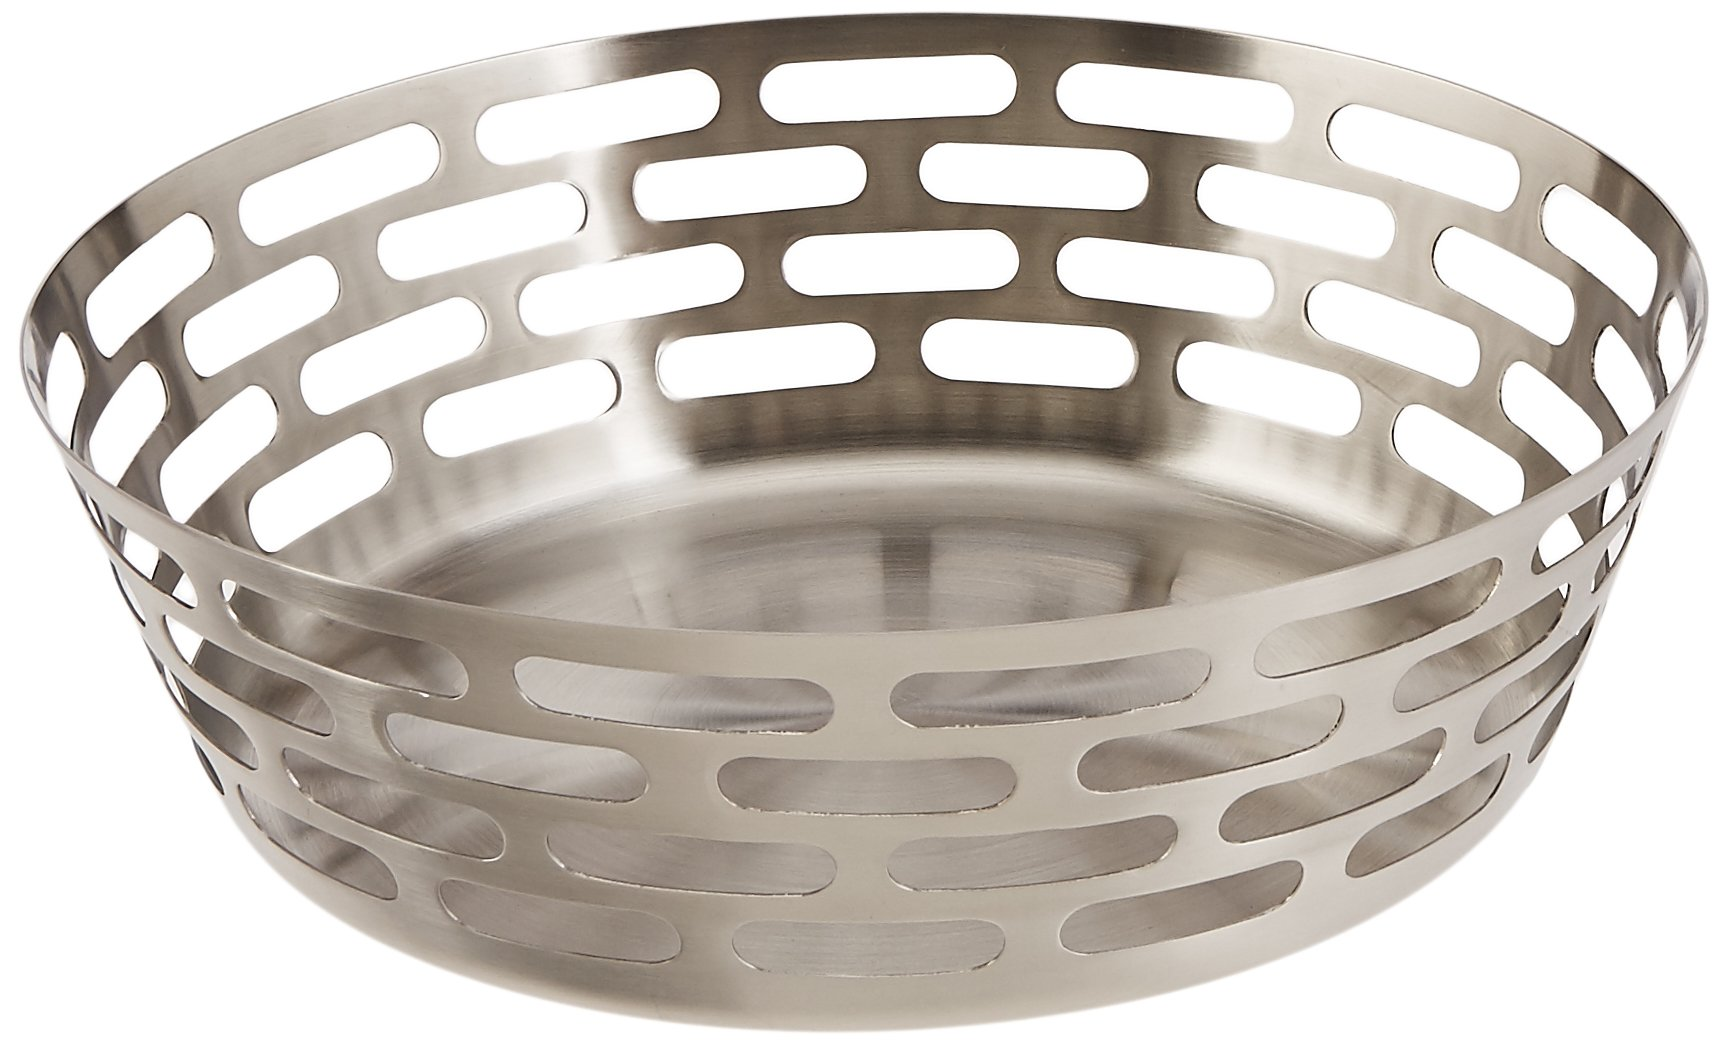 Mod18 Steelworks SB-63 Round Fruit Bowl, Brushed Stainless